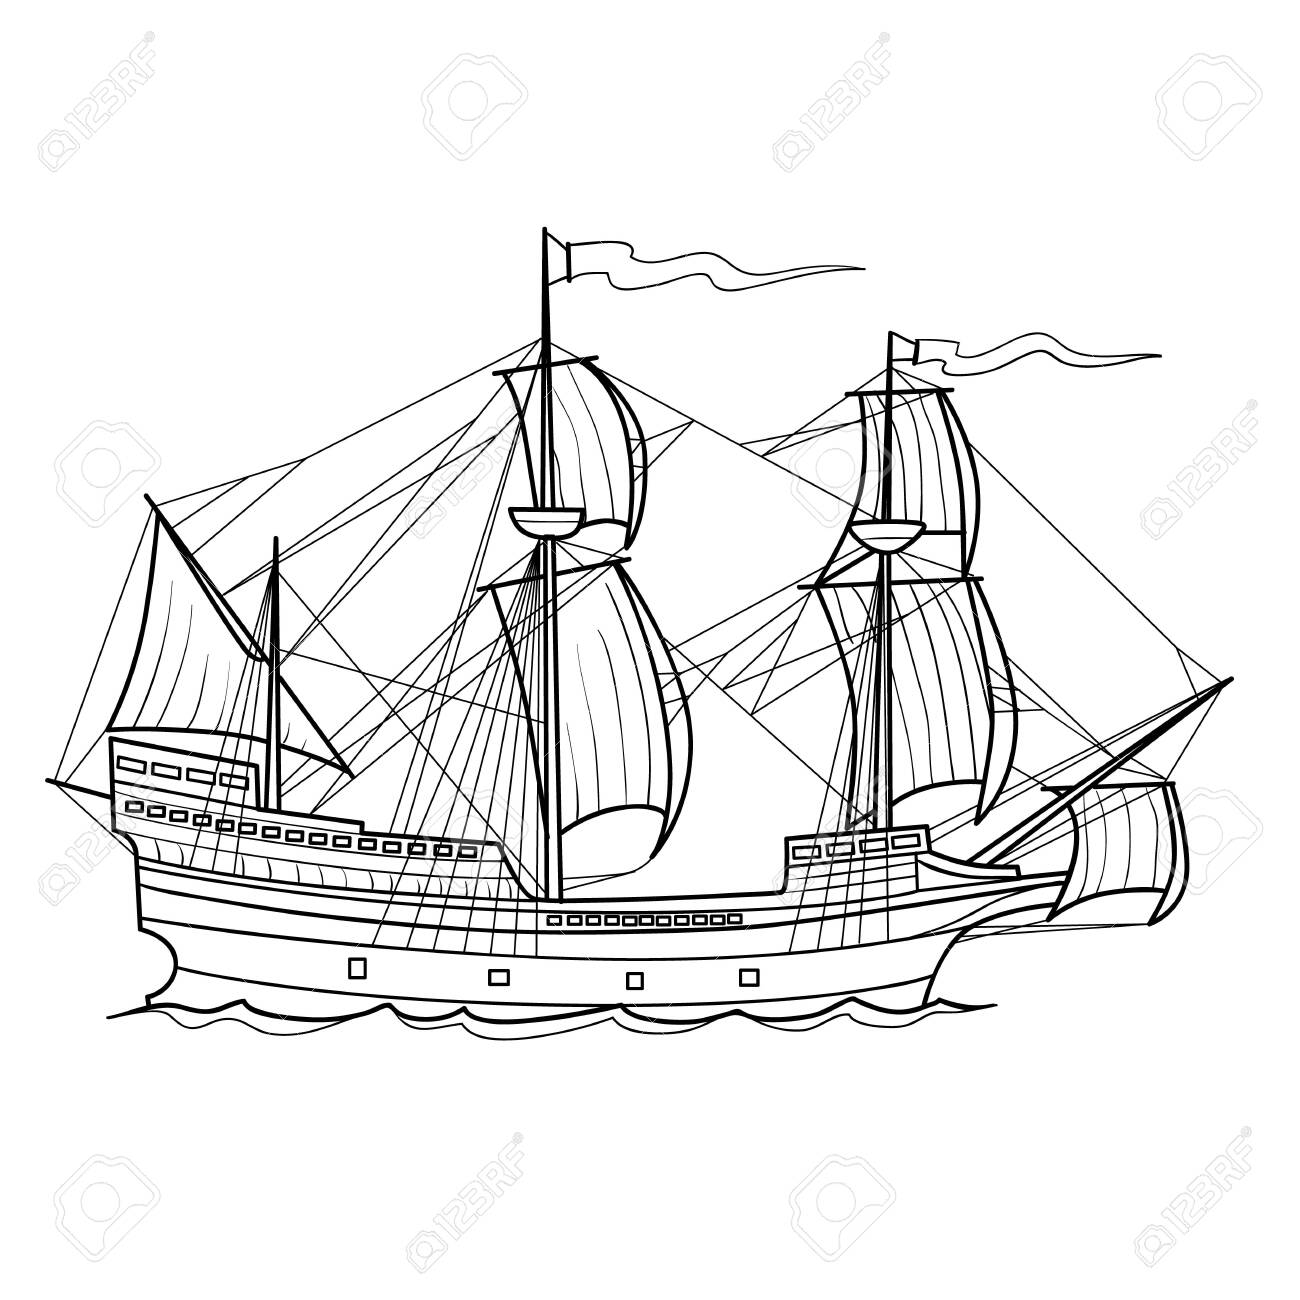 sketch of an old sailing ship, coloring book, isolated object on white background, vector illustration - 152714792